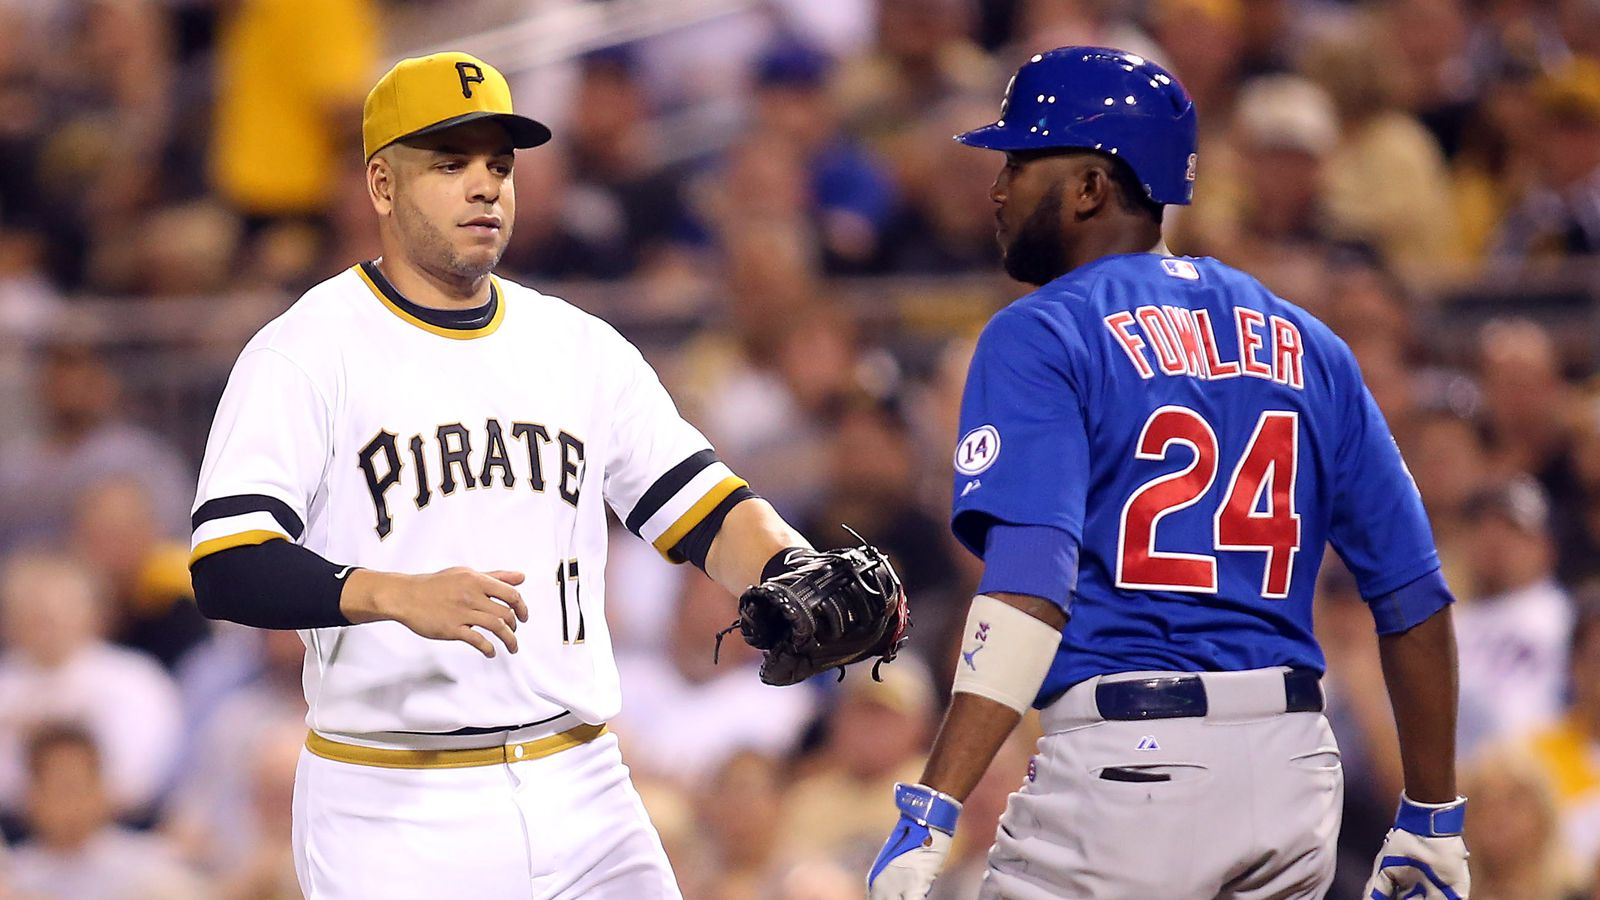 Cubs Vs Pirates 2015 Live Stream Time Tv Schedule For